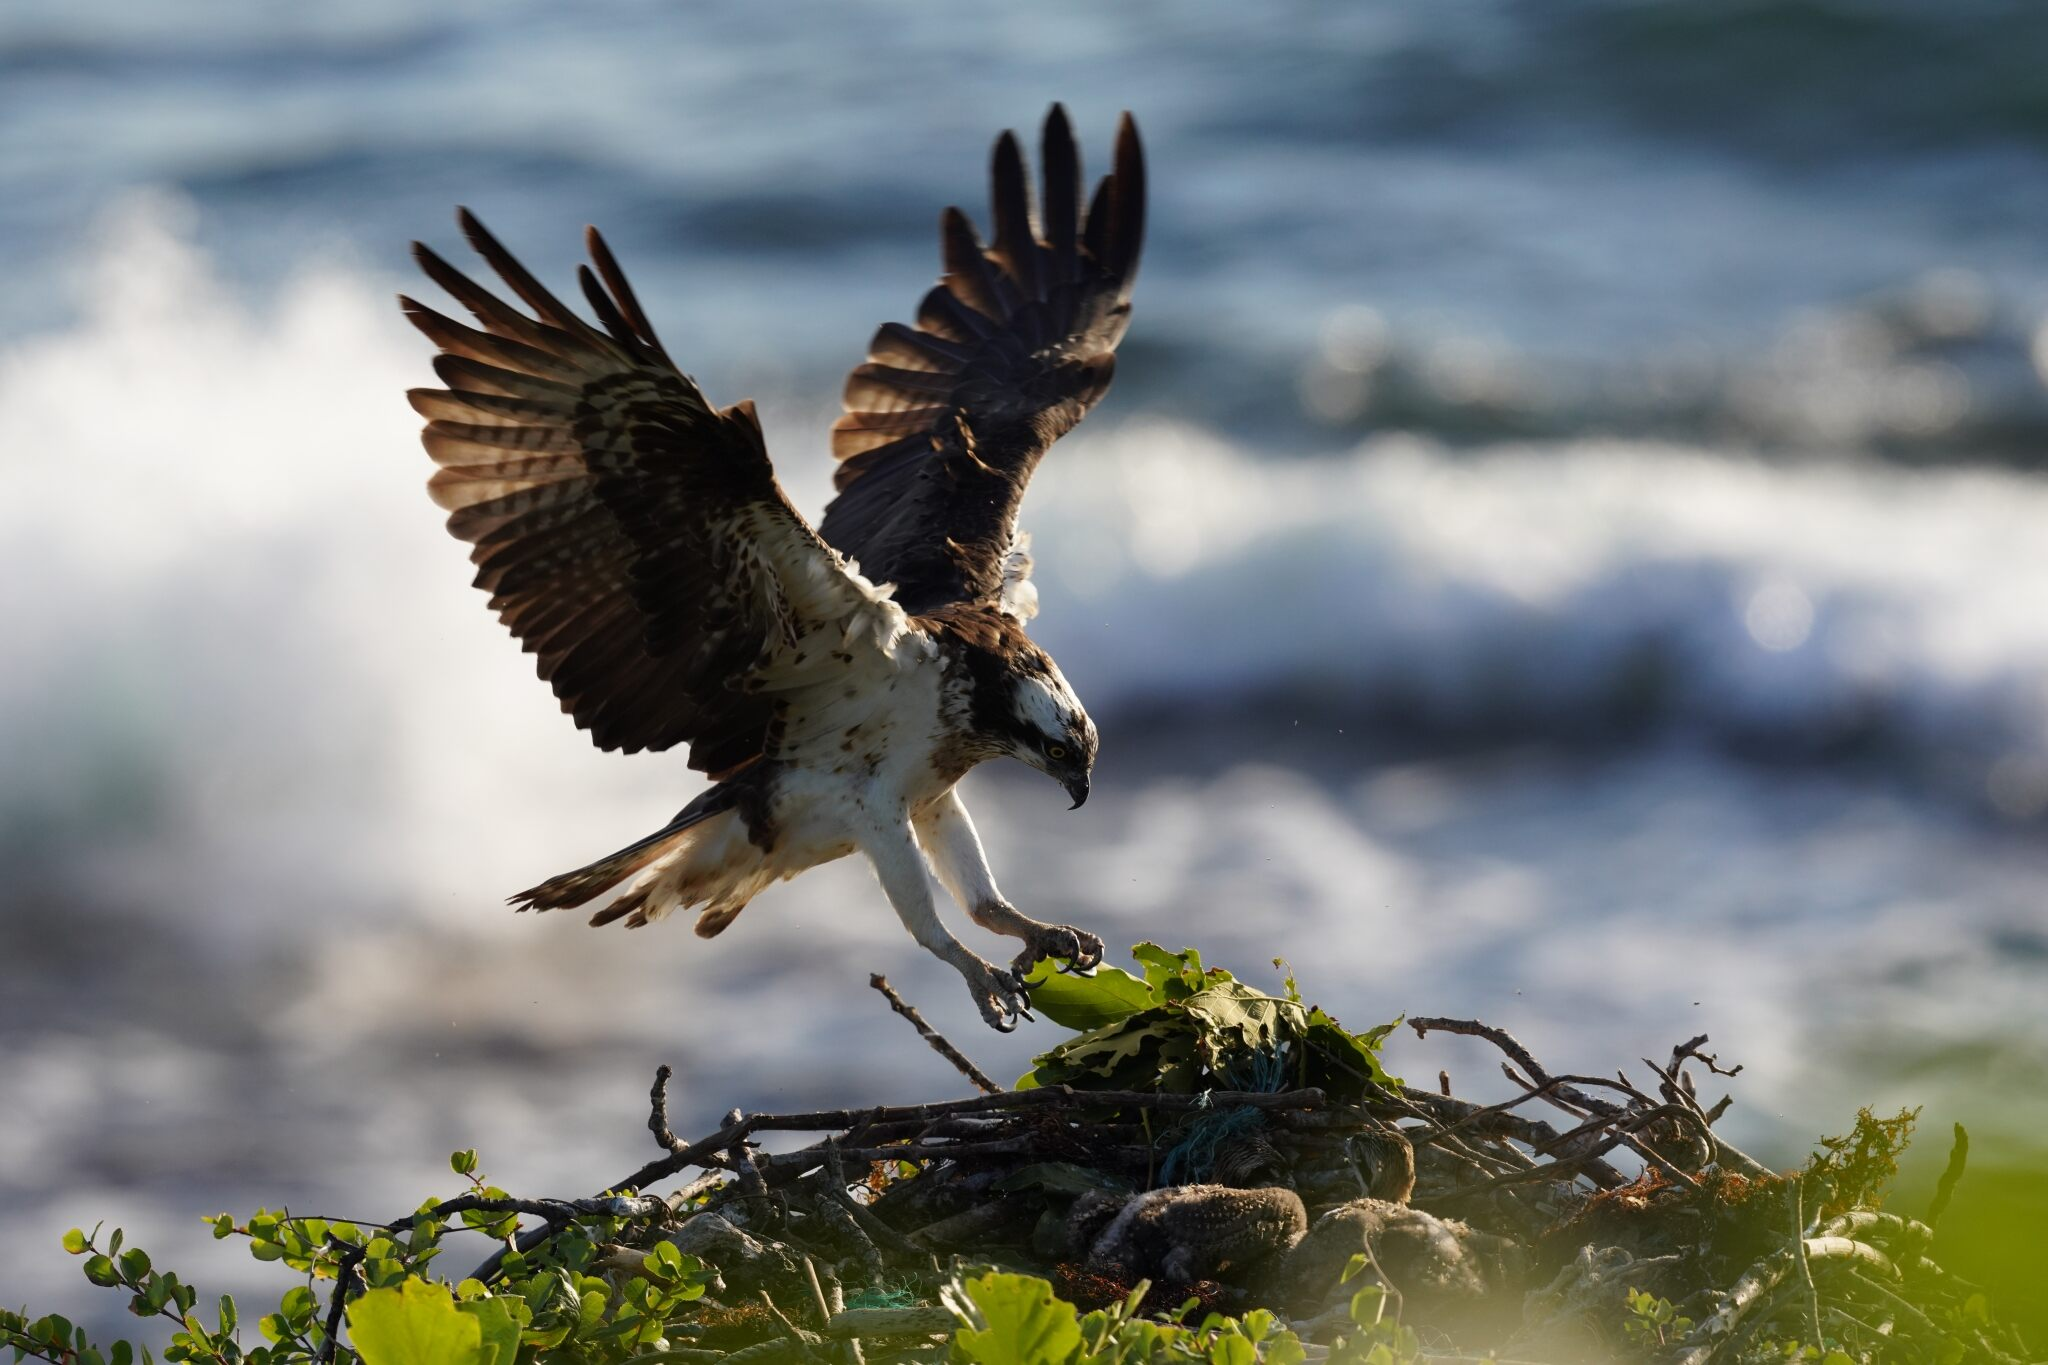 Eagle with outstretched wings landing on a nest by the sea, photographed with the Sony a7R IV mirrorless camera